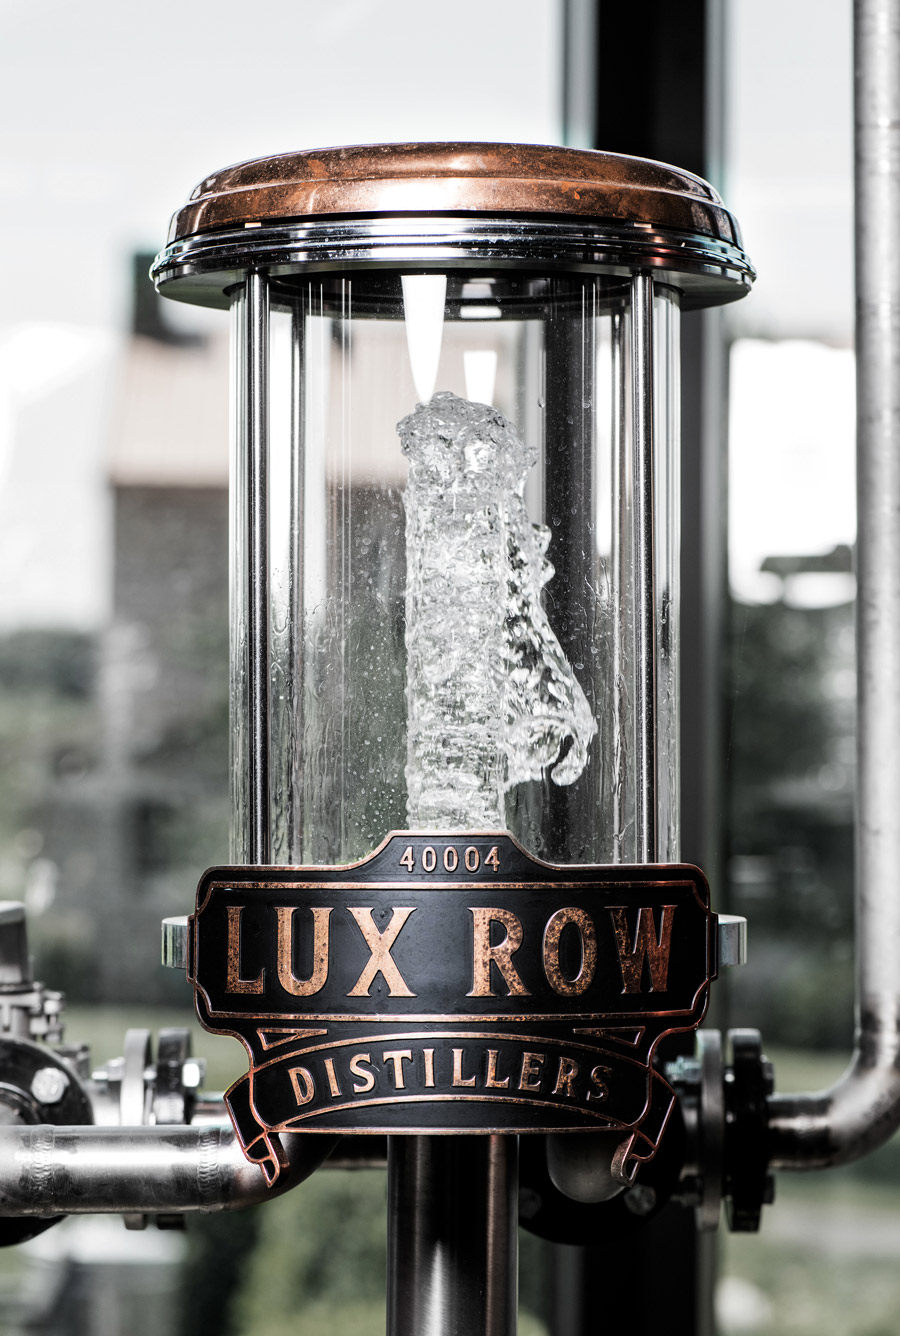 lux row distillers mrcup 04